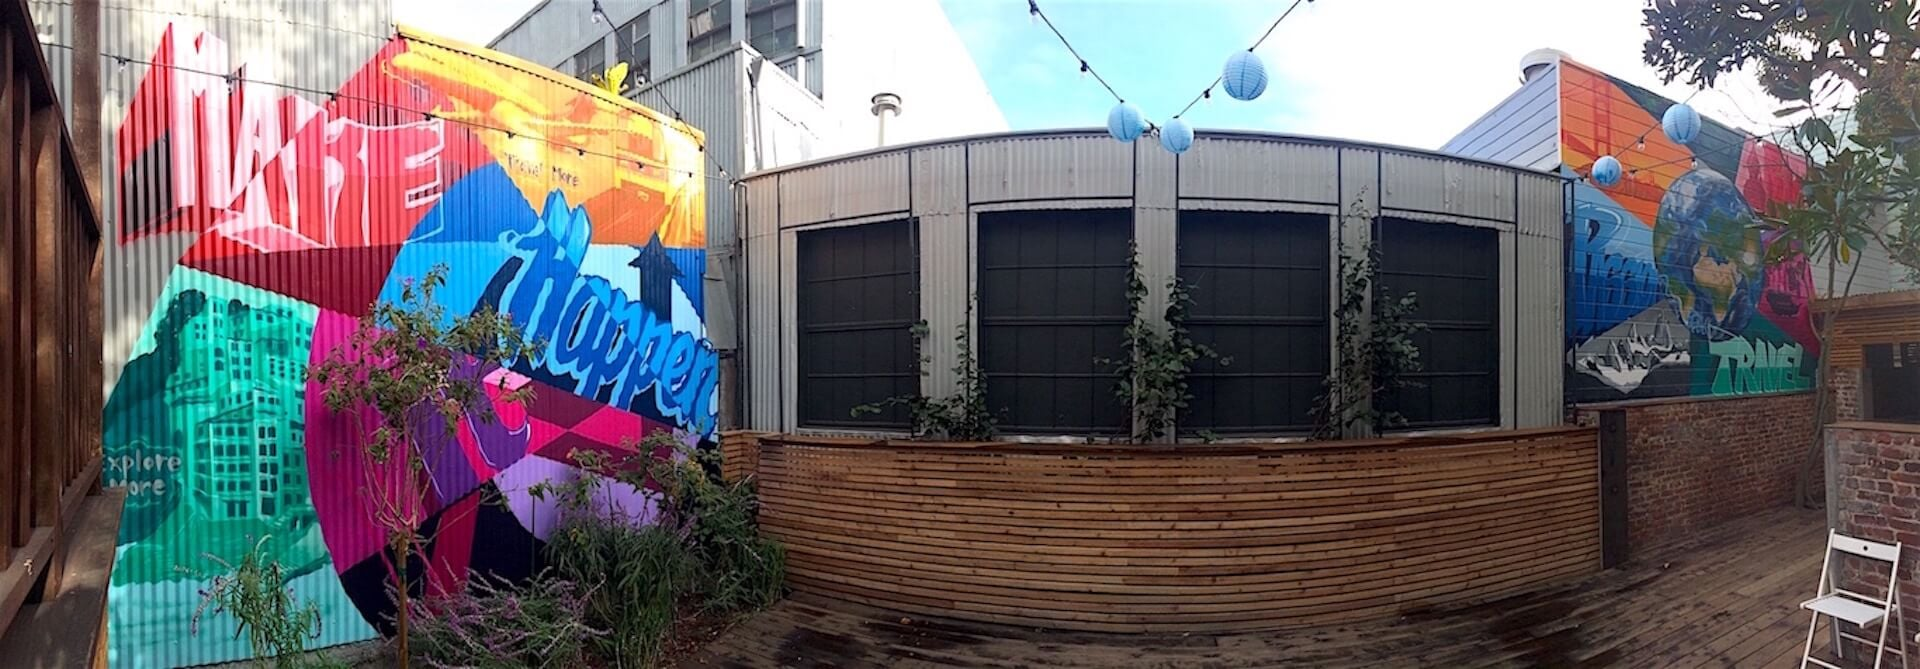 Commissioned Office Mural 4 for Bluesmart | SOMA San Francisco USA, 2015